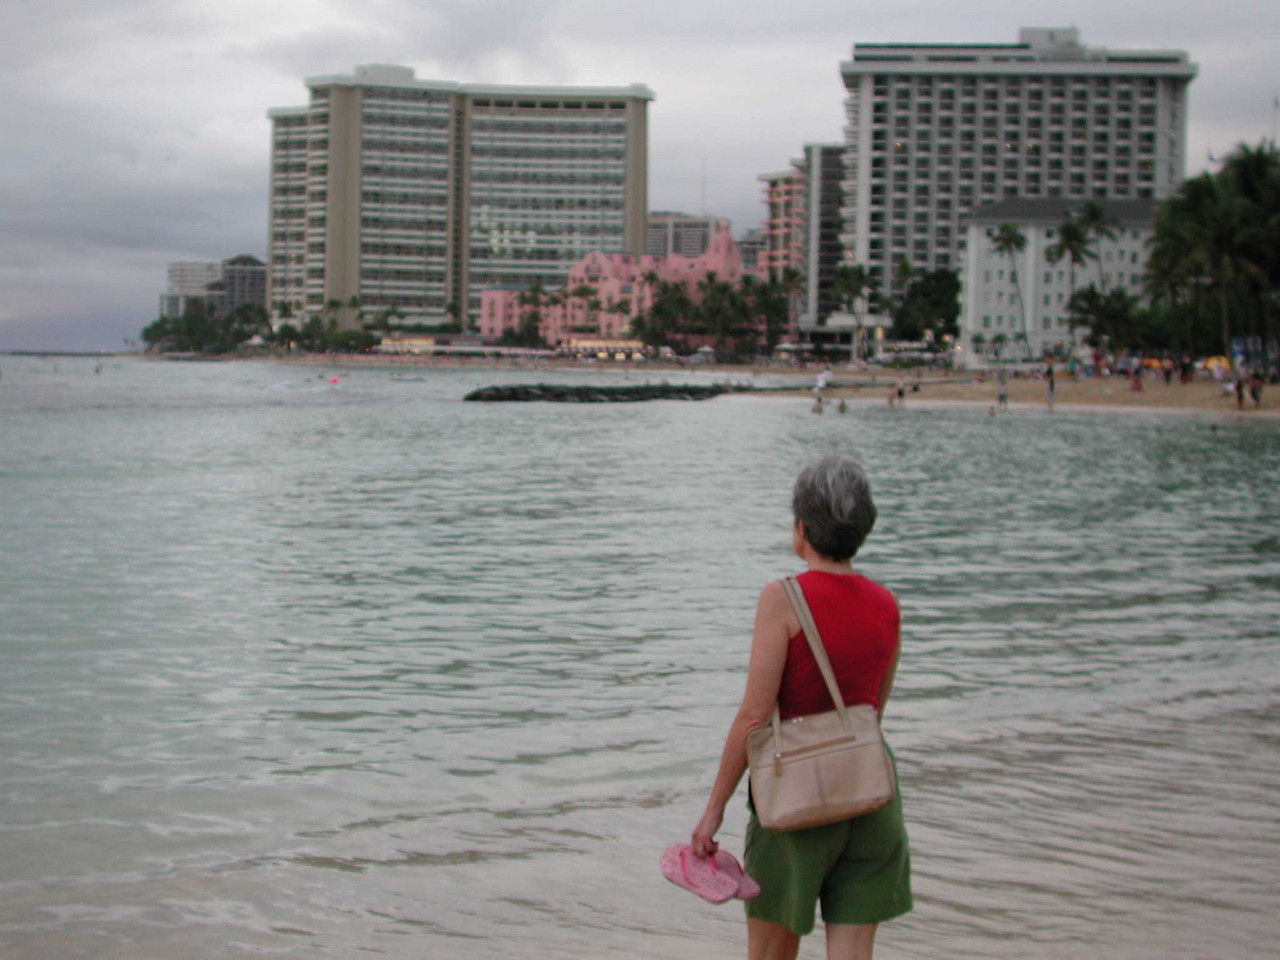 One of the hotels (pink in the background) reminded us a little of South Beach.